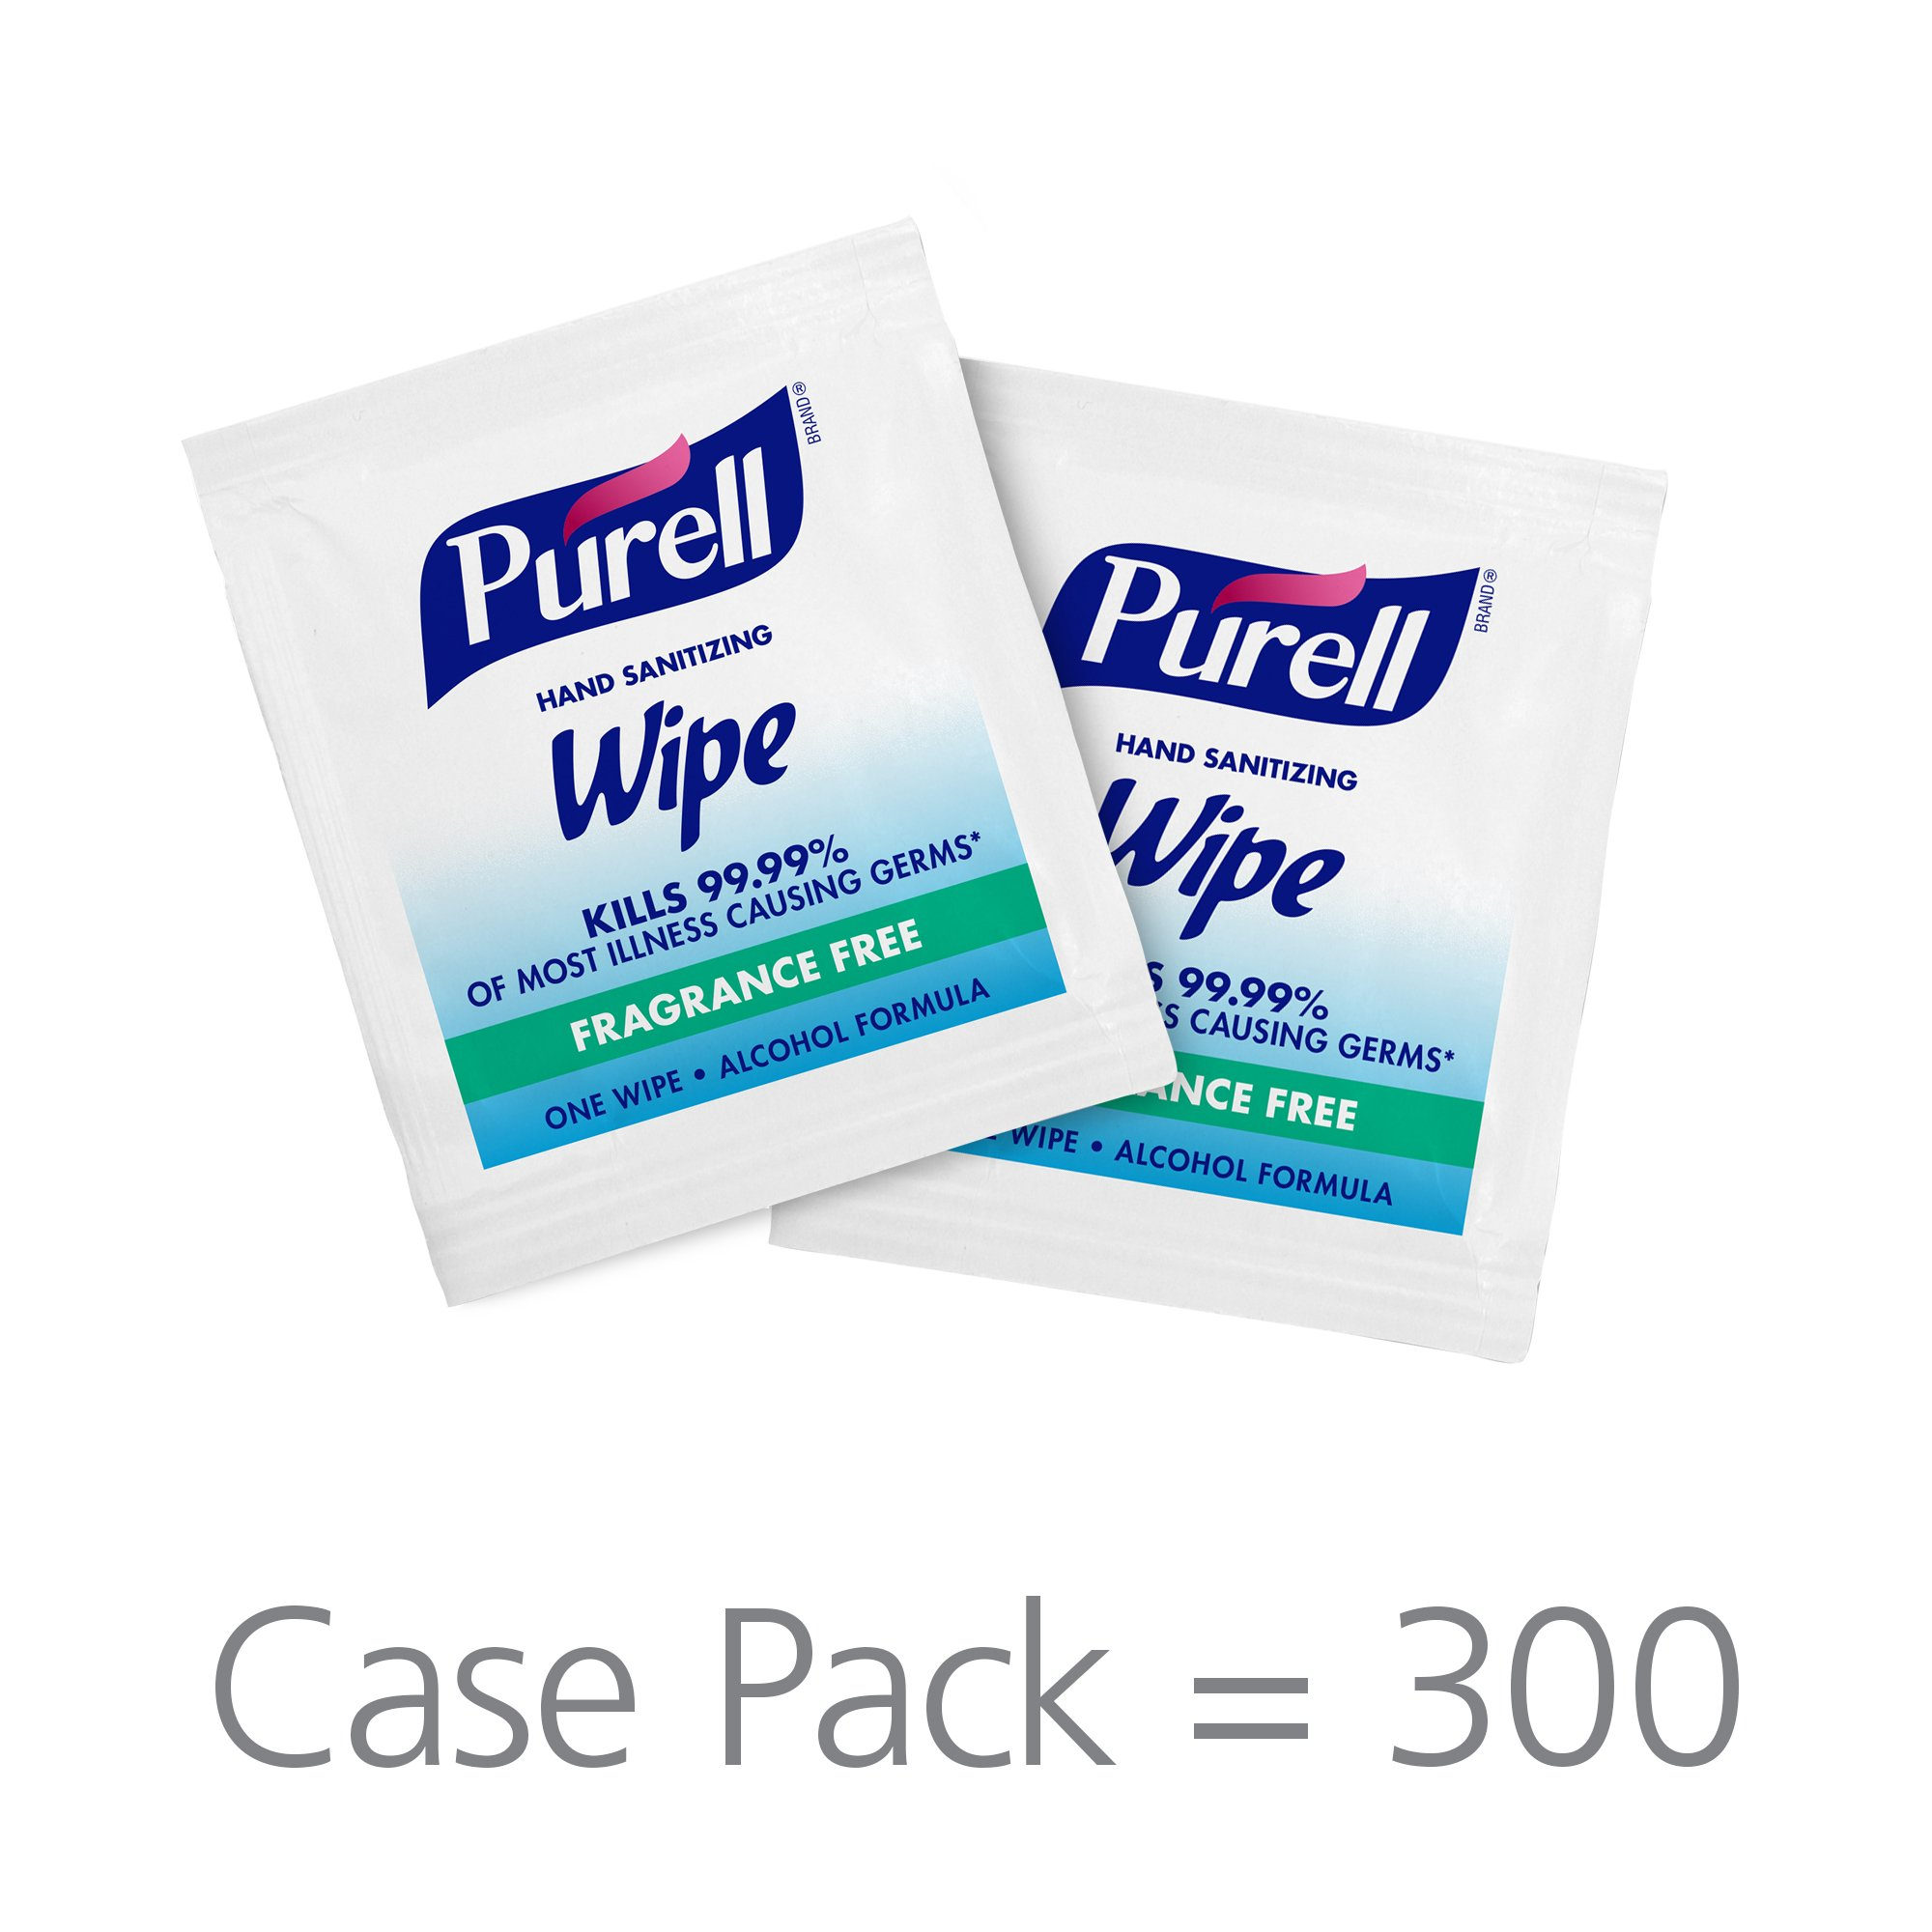 PURELL Hand Sanitizing Alcohol Wipes - Portable Individually Wrapped Wipes (Pack fo 300) - 9020-06-EC by Purell (Image #2)